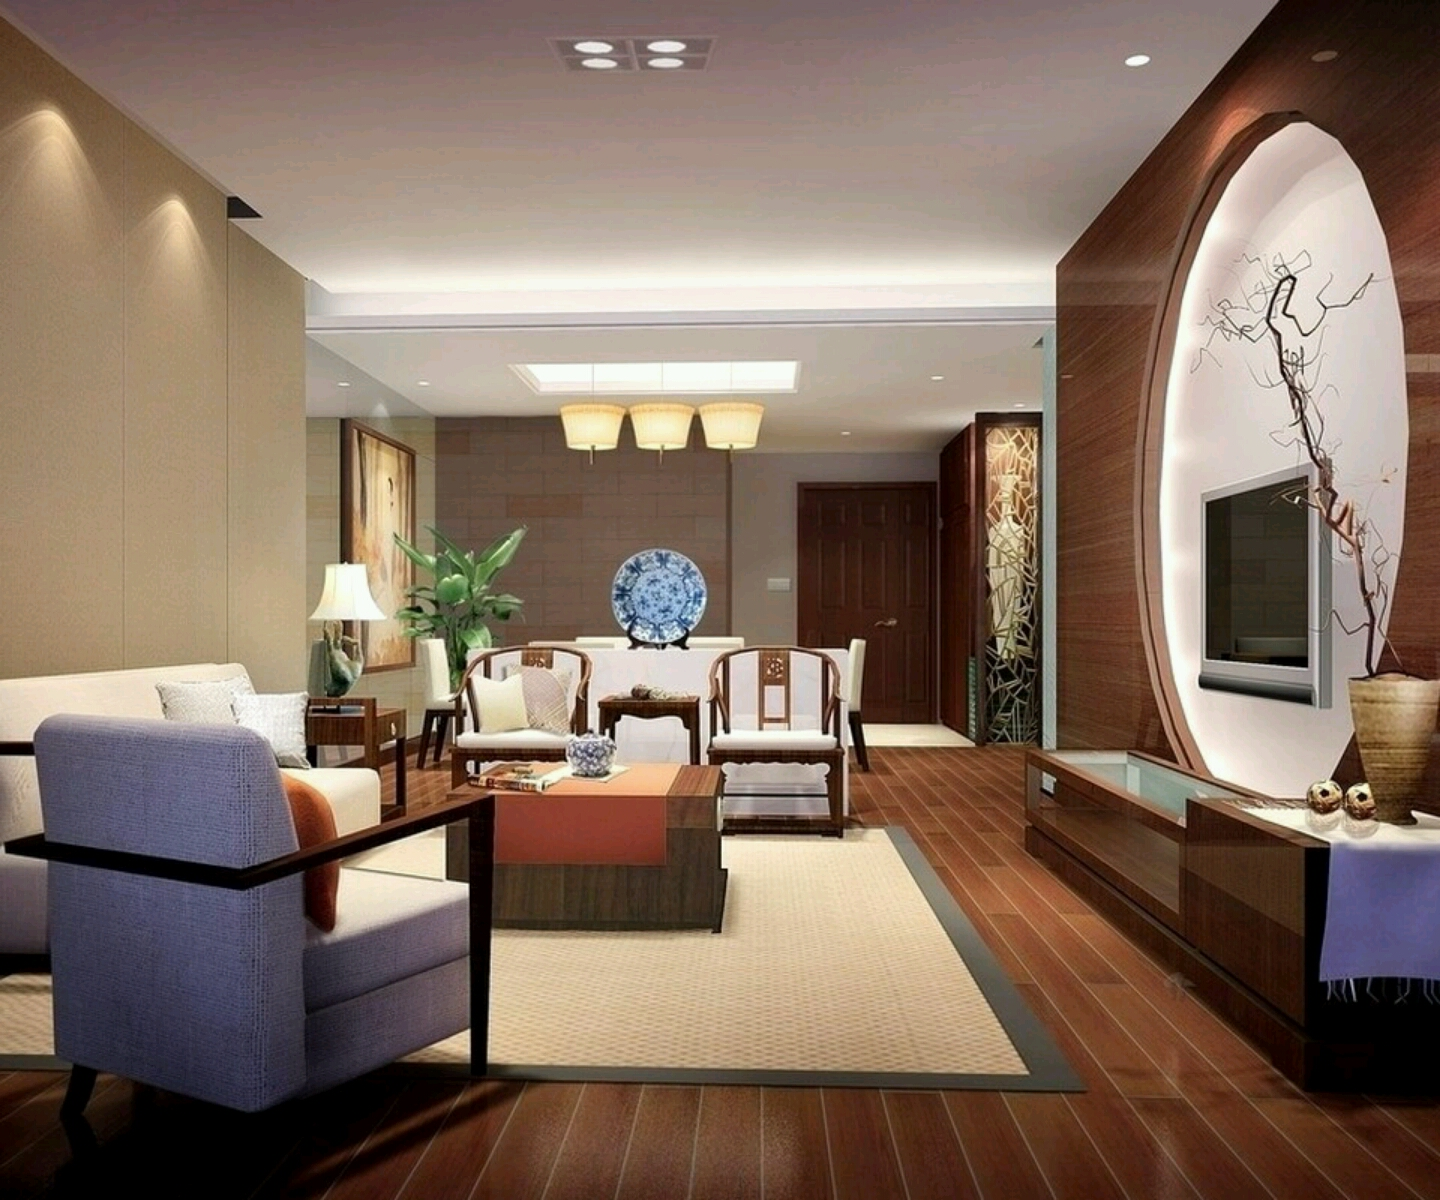 Luxury homes interior decoration living room designs ideas modern home designs - Living interior design ...